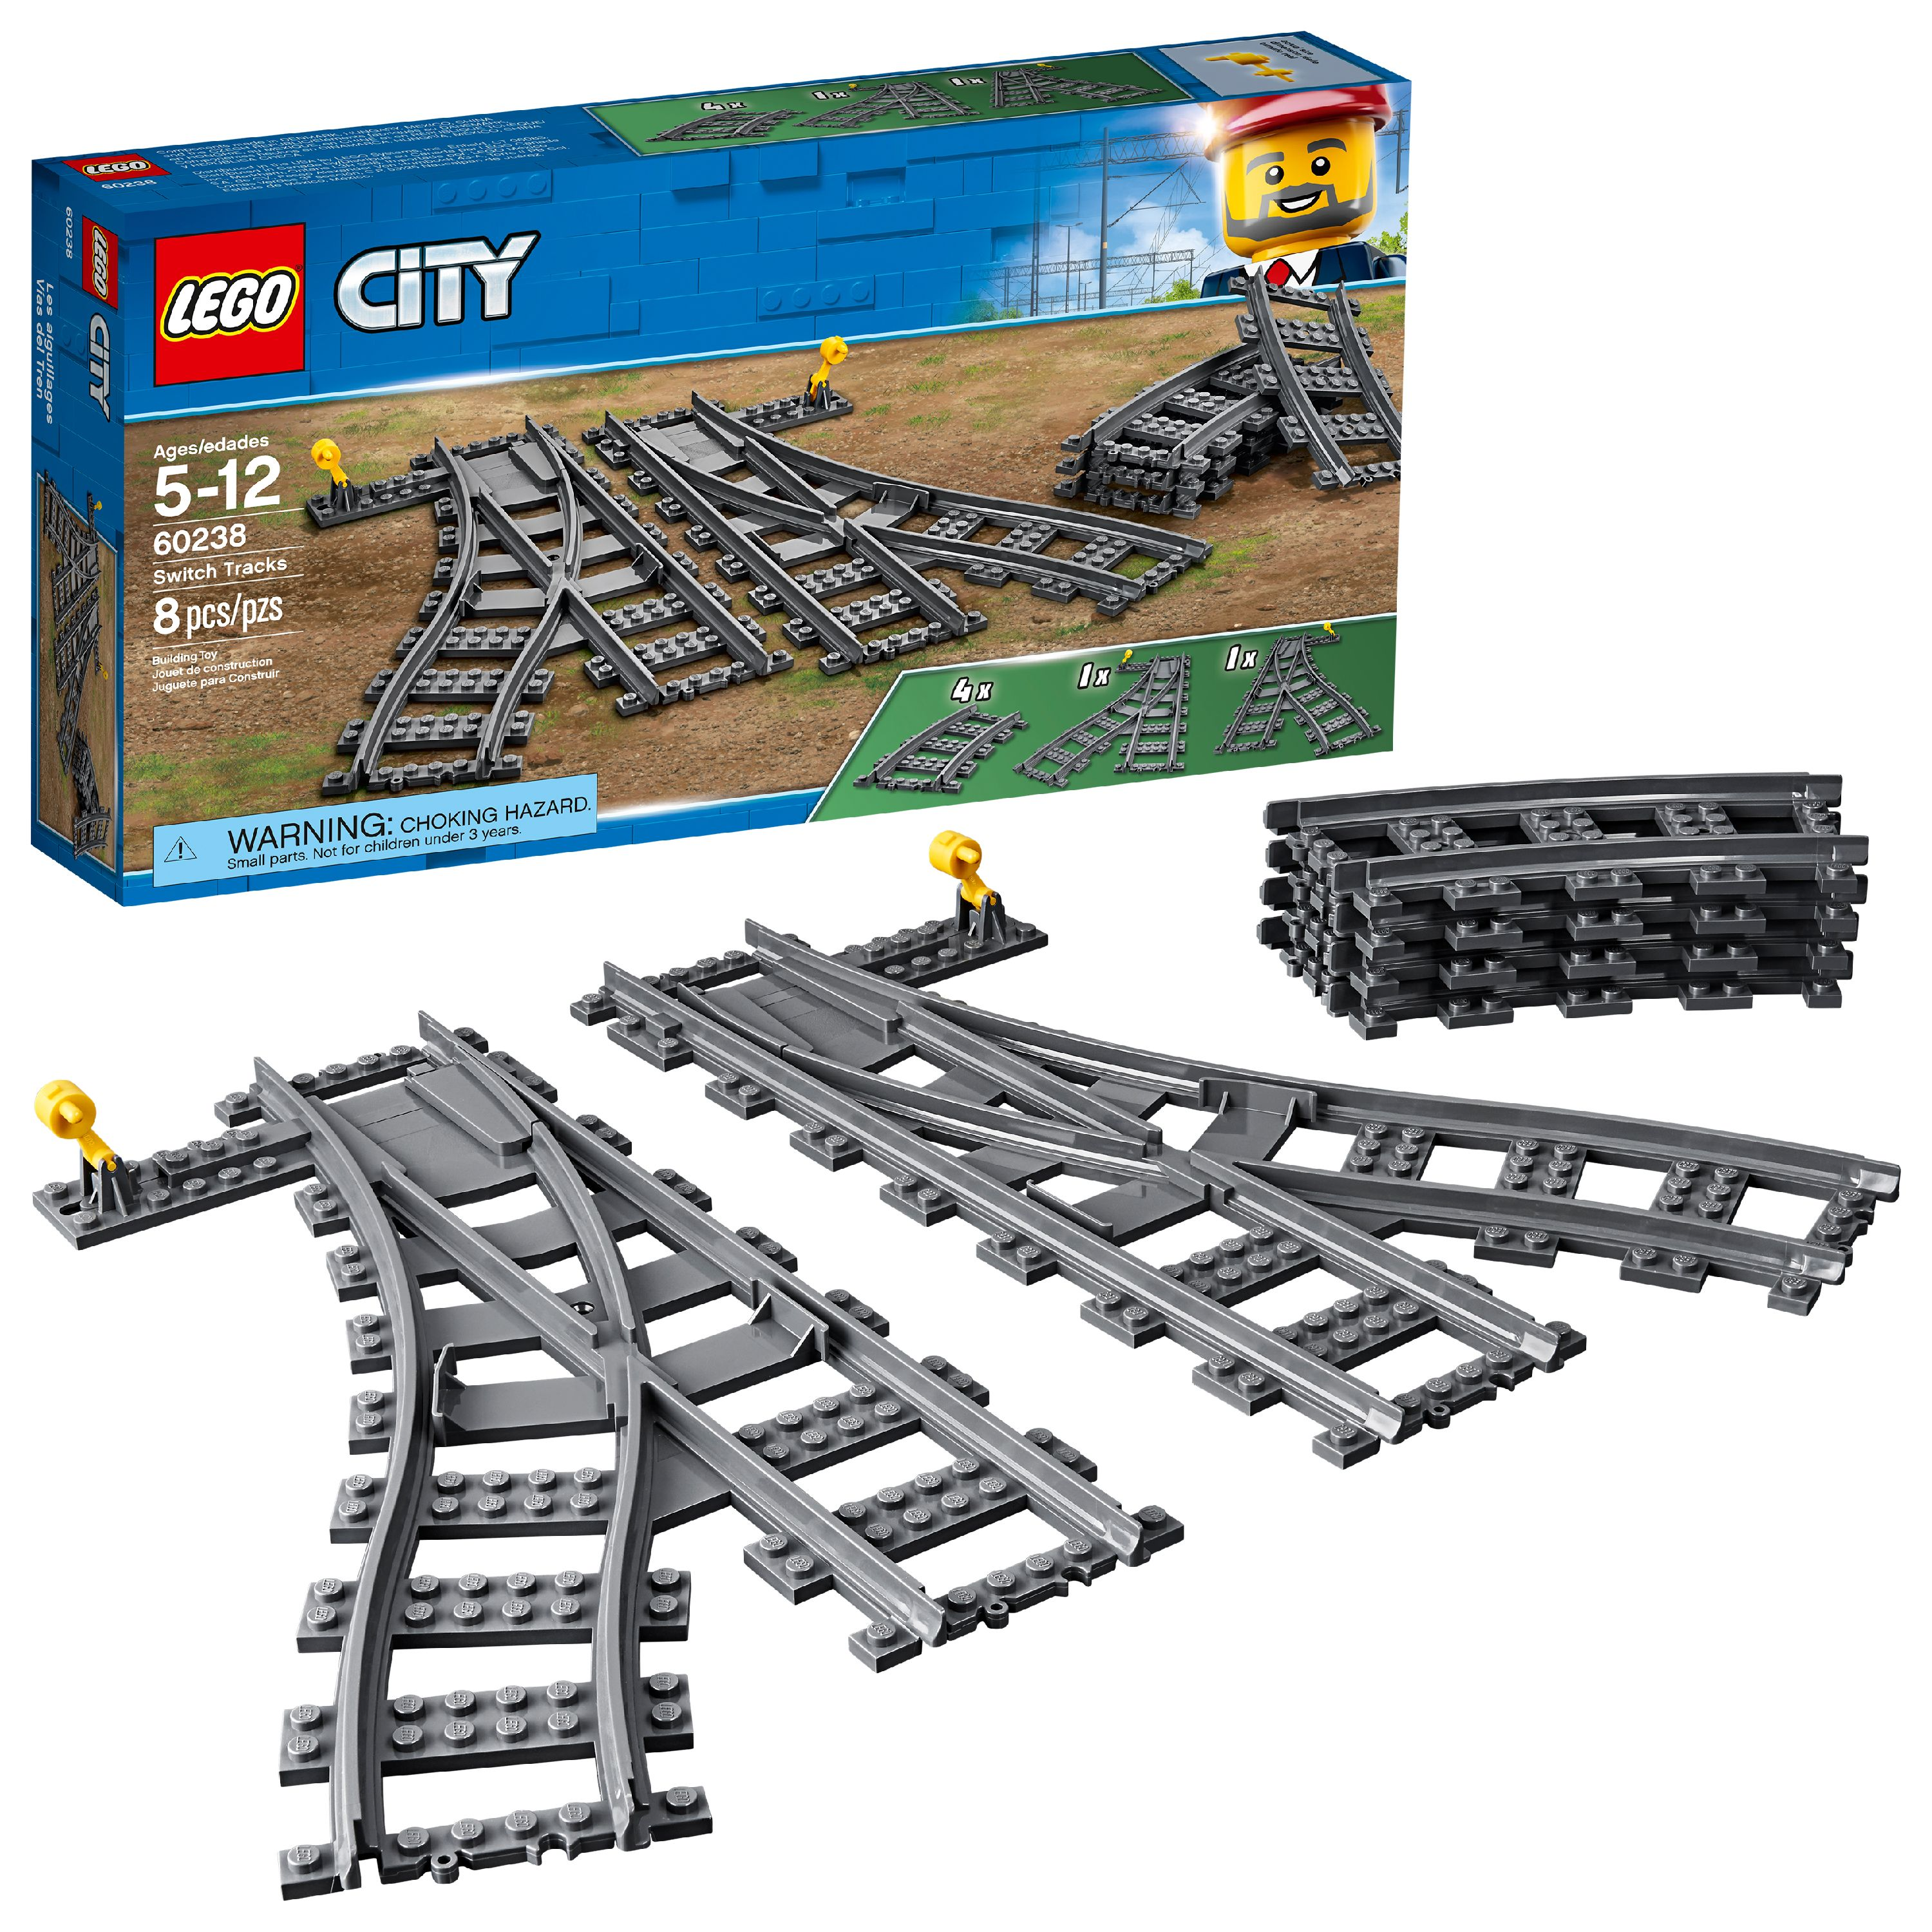 LEGO City Switch Tracks 60238 Building Accessory (8 Pieces)